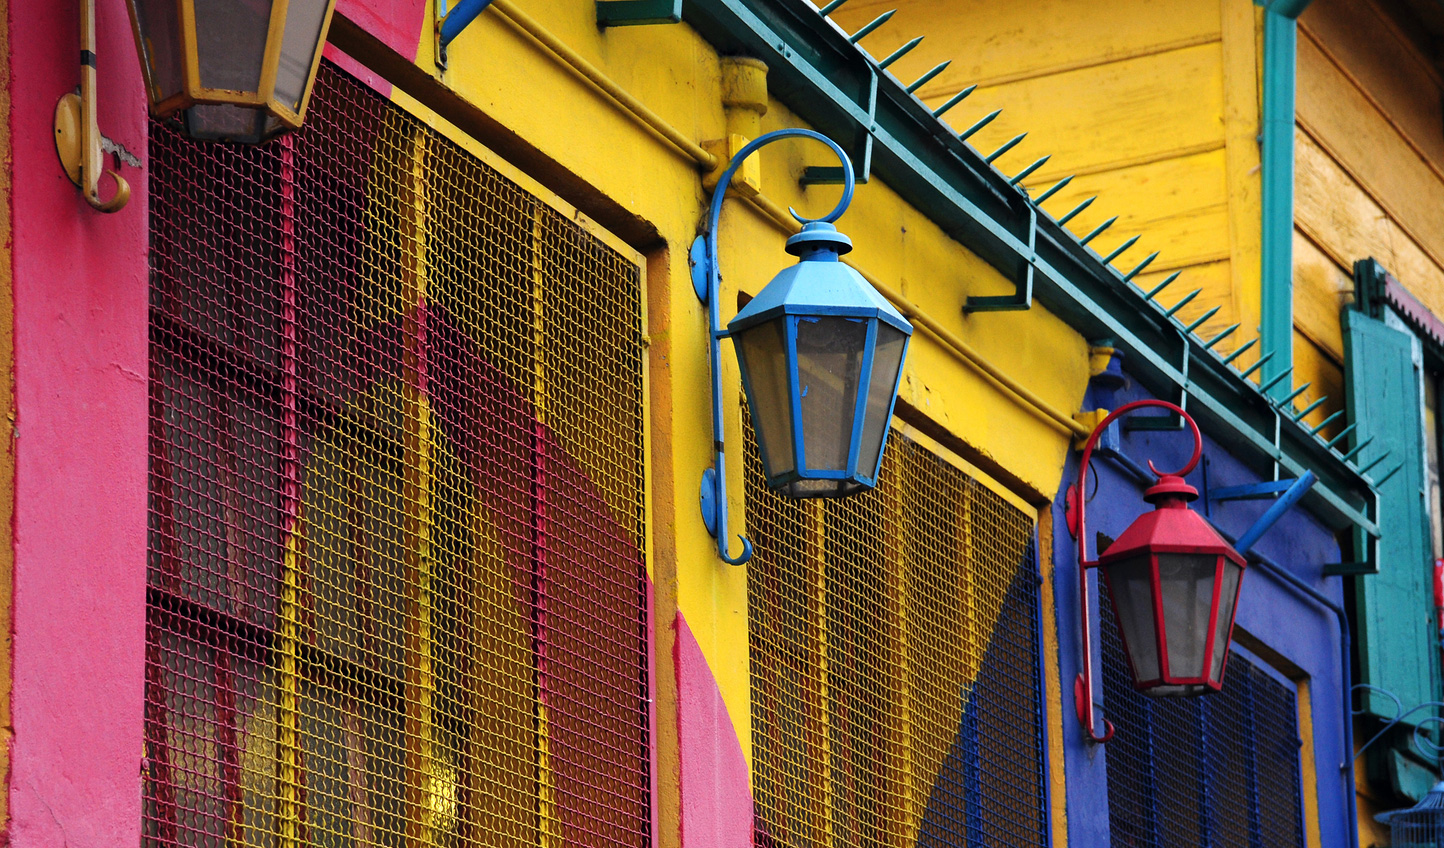 Culture with a dash of colour in La Boca